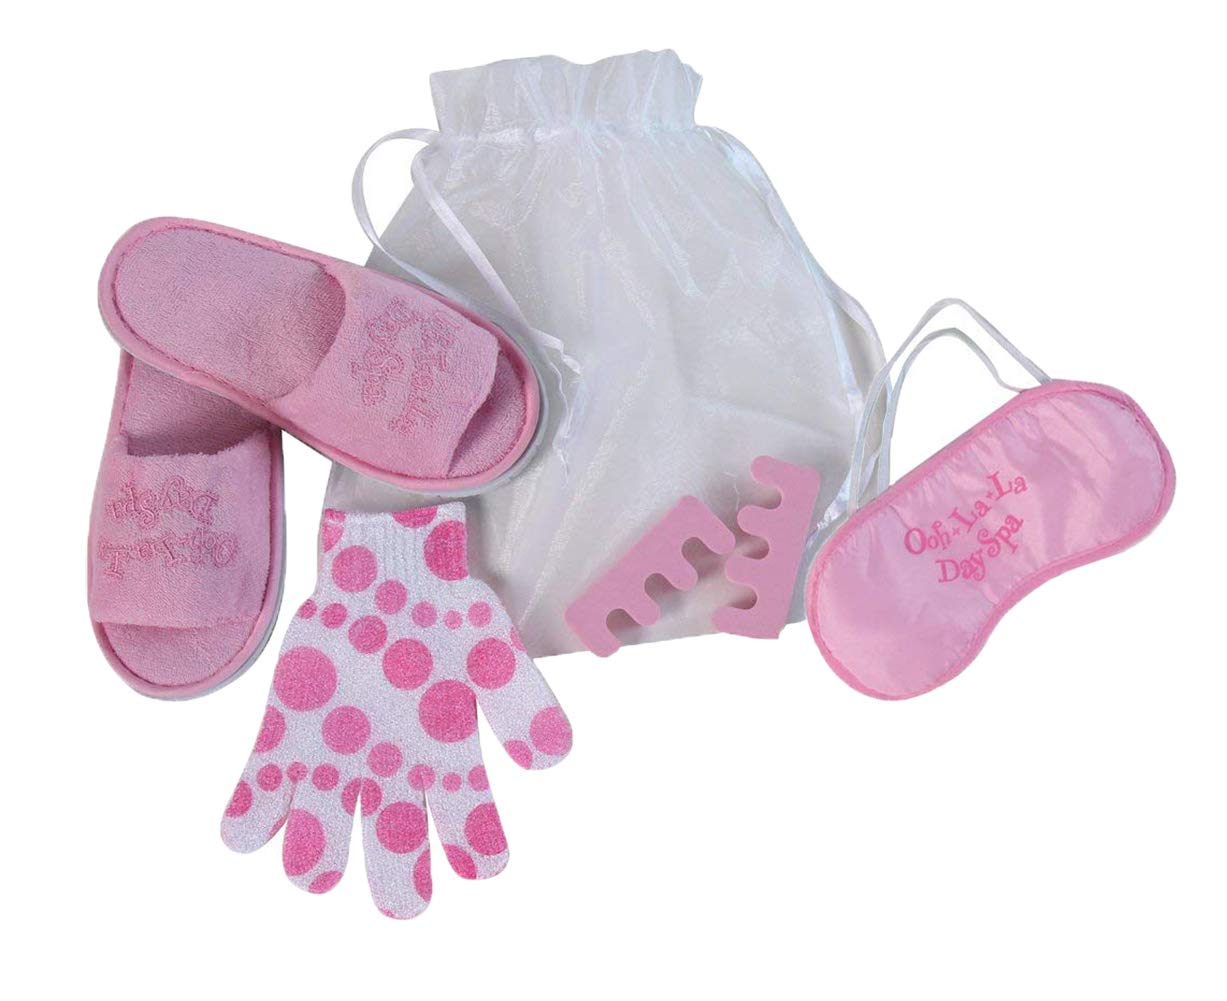 Making Believe Girls Day Spa Party Favor Kit (One Pair Medium Slippers, Organza Drawstring Bag, Bath Mitt Glove, Eye Mask and Toe Separators)